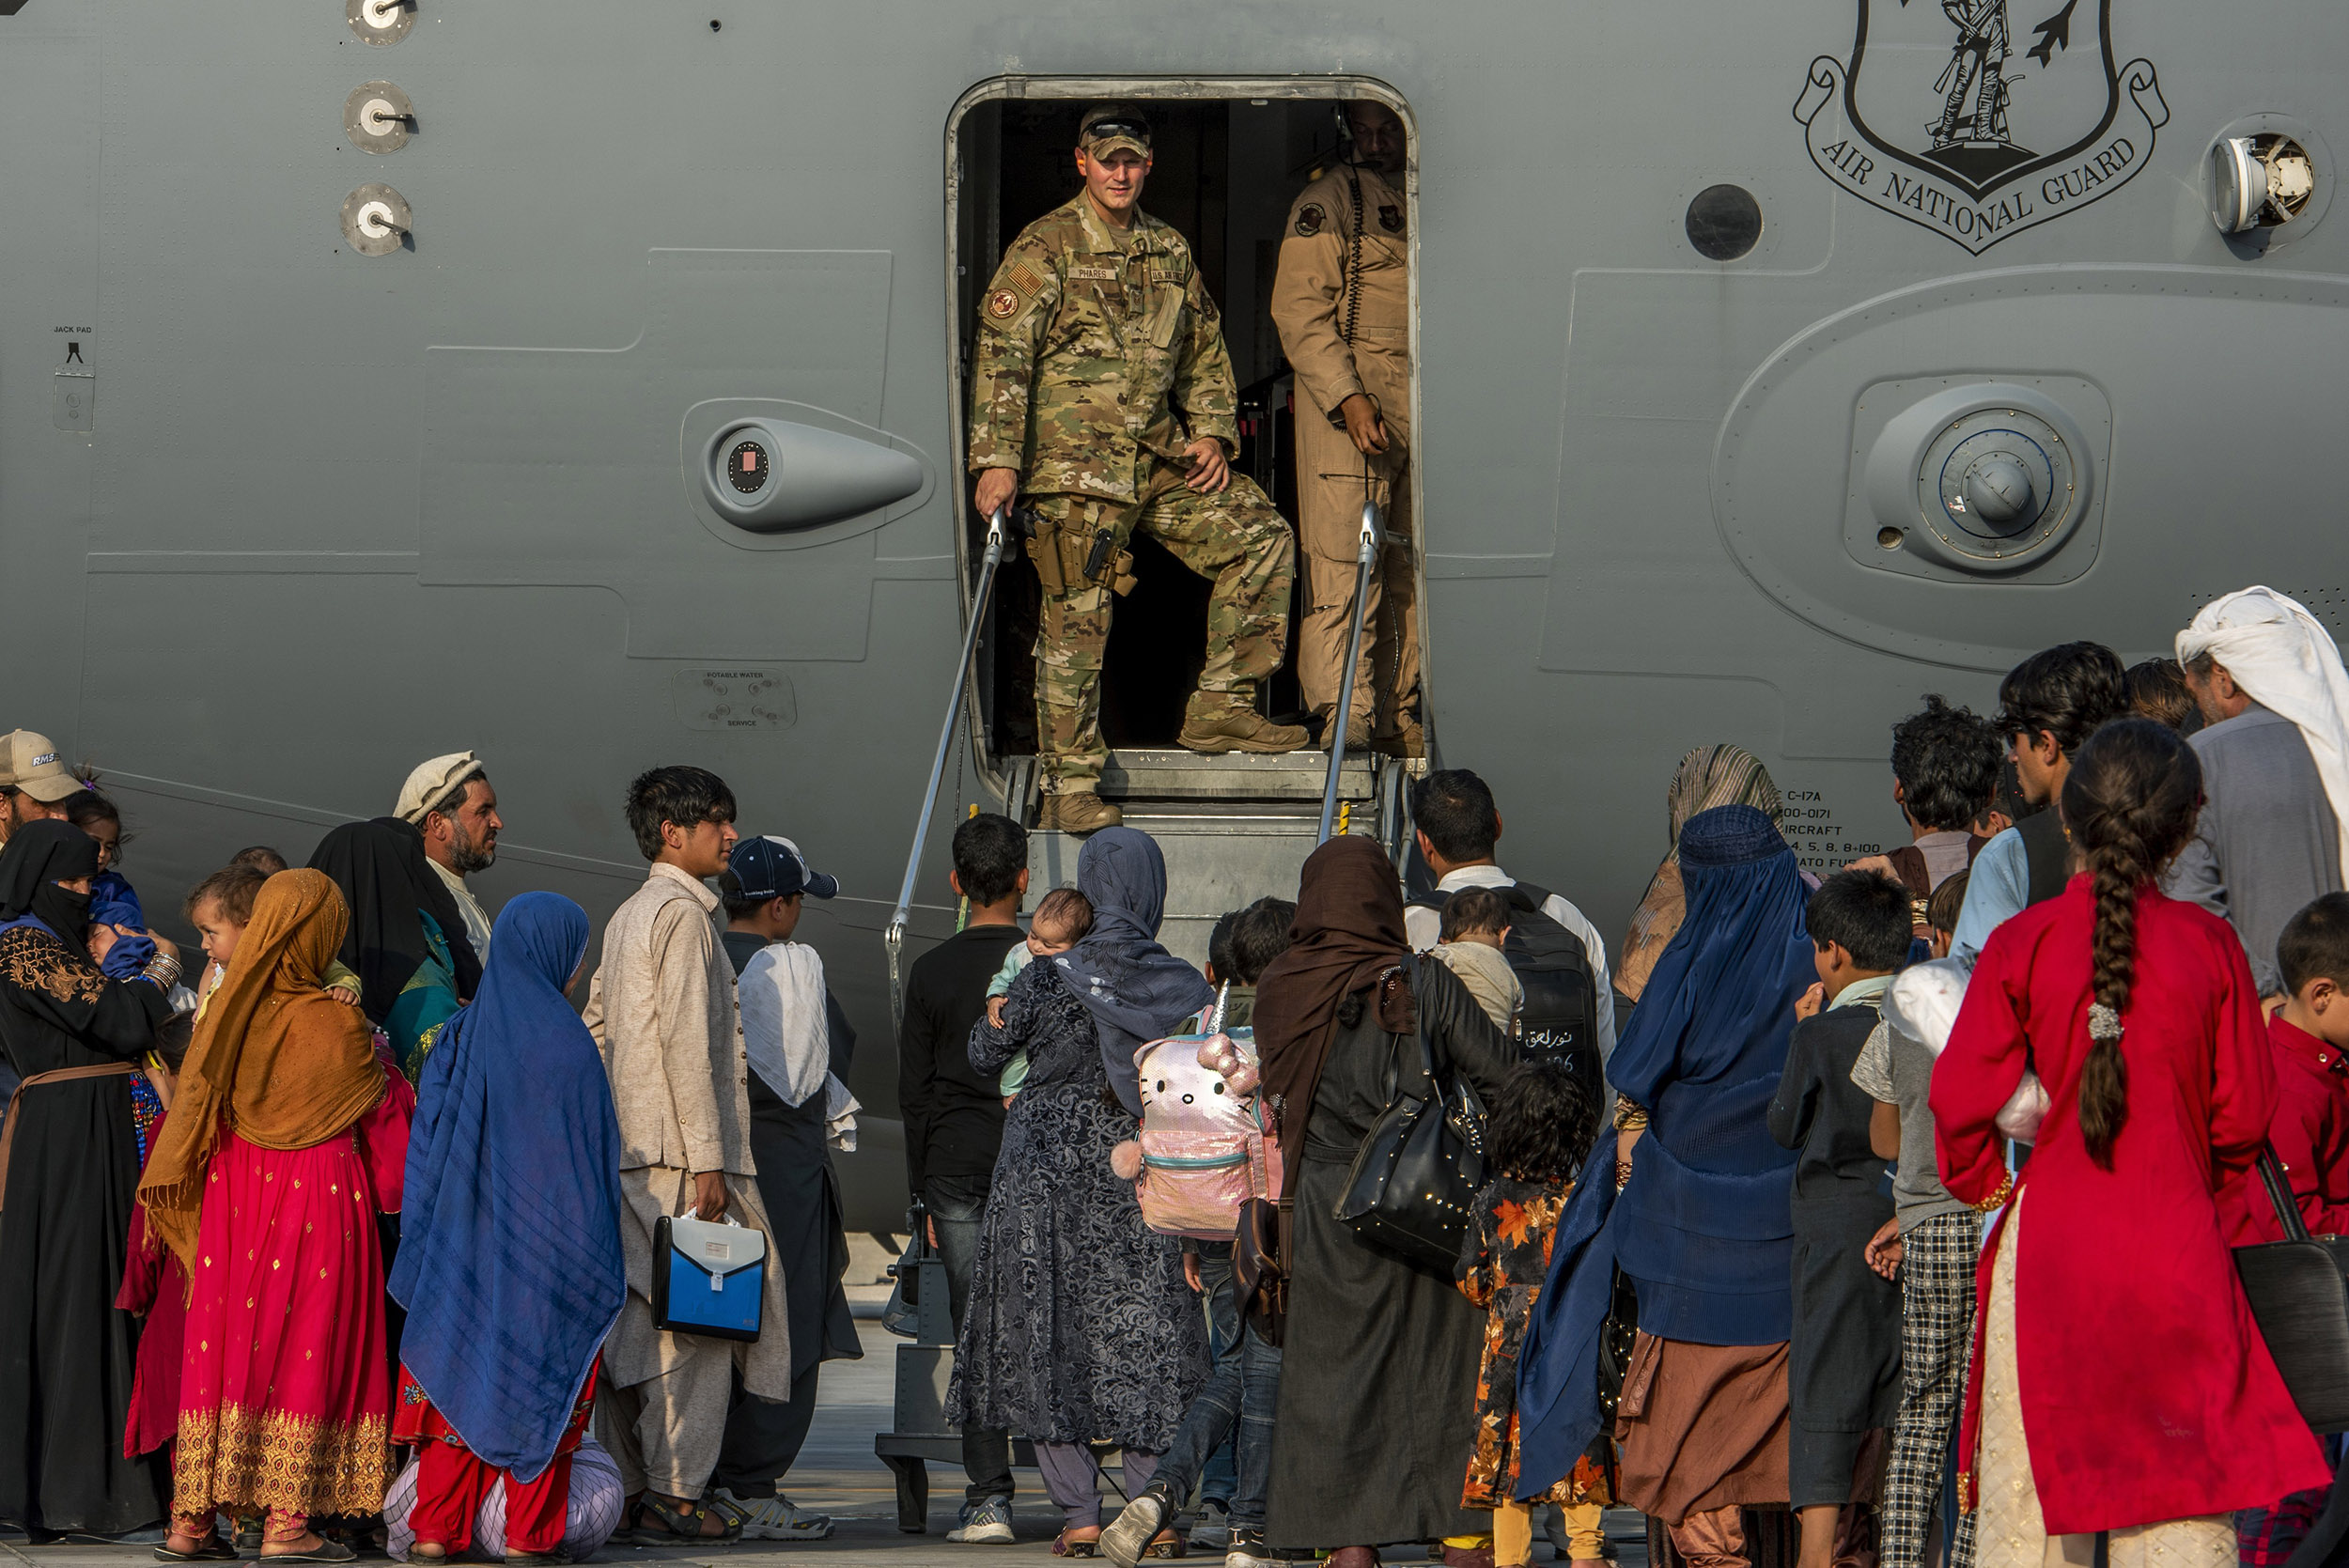 As airlift accelerates, evacuees say they are facing dire conditions in transit limbo